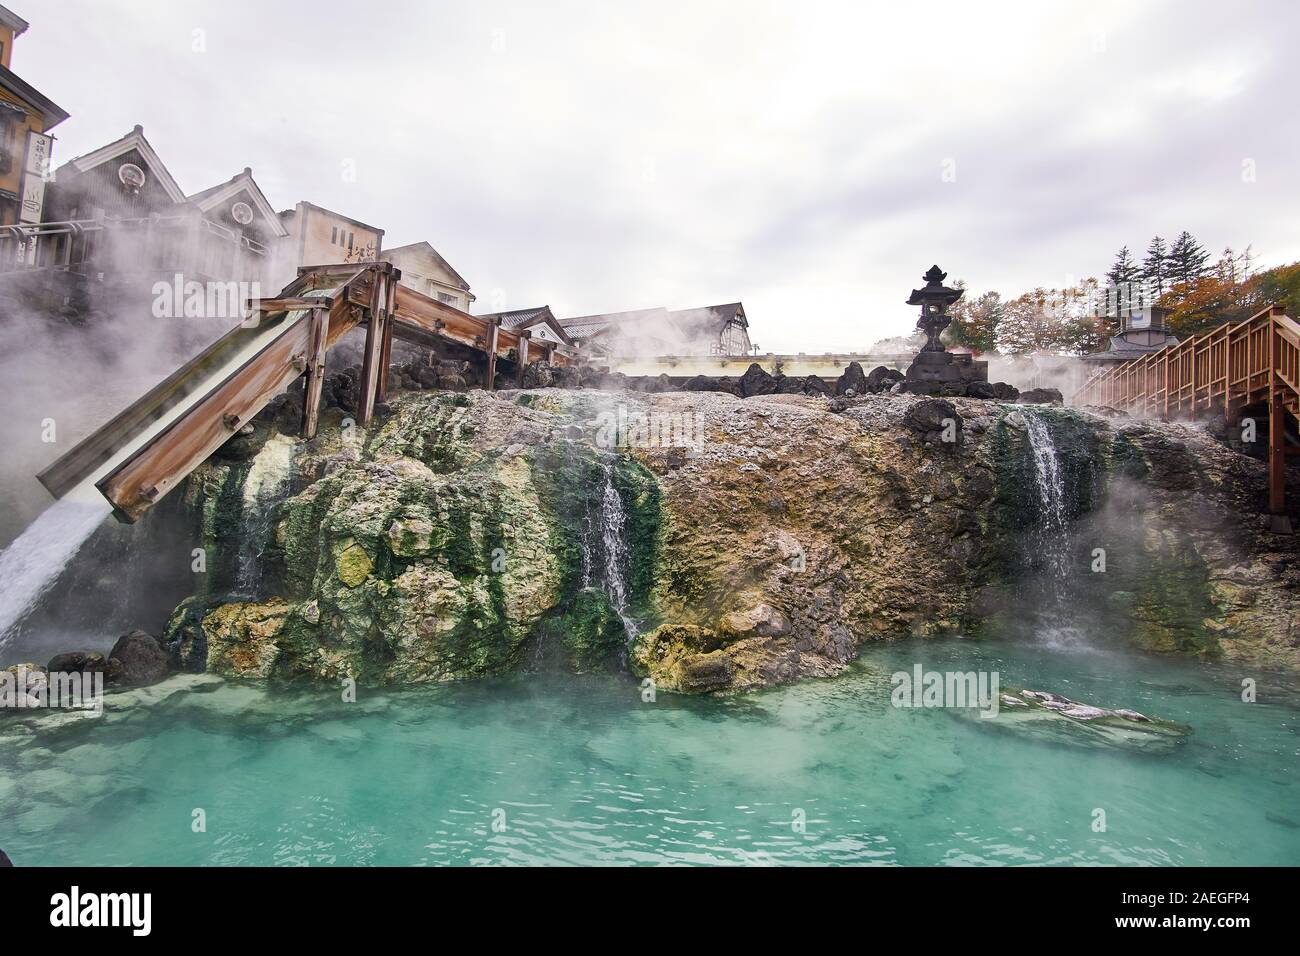 wide-angle-view-of-the-flowing-sulfurous-water-at-the-hot-water-field-yubatake-at-kusatsu-onsen-hot-spring-resort-in-gunma-japan-on-a-cloudy-day-2AEGFP4.jpg